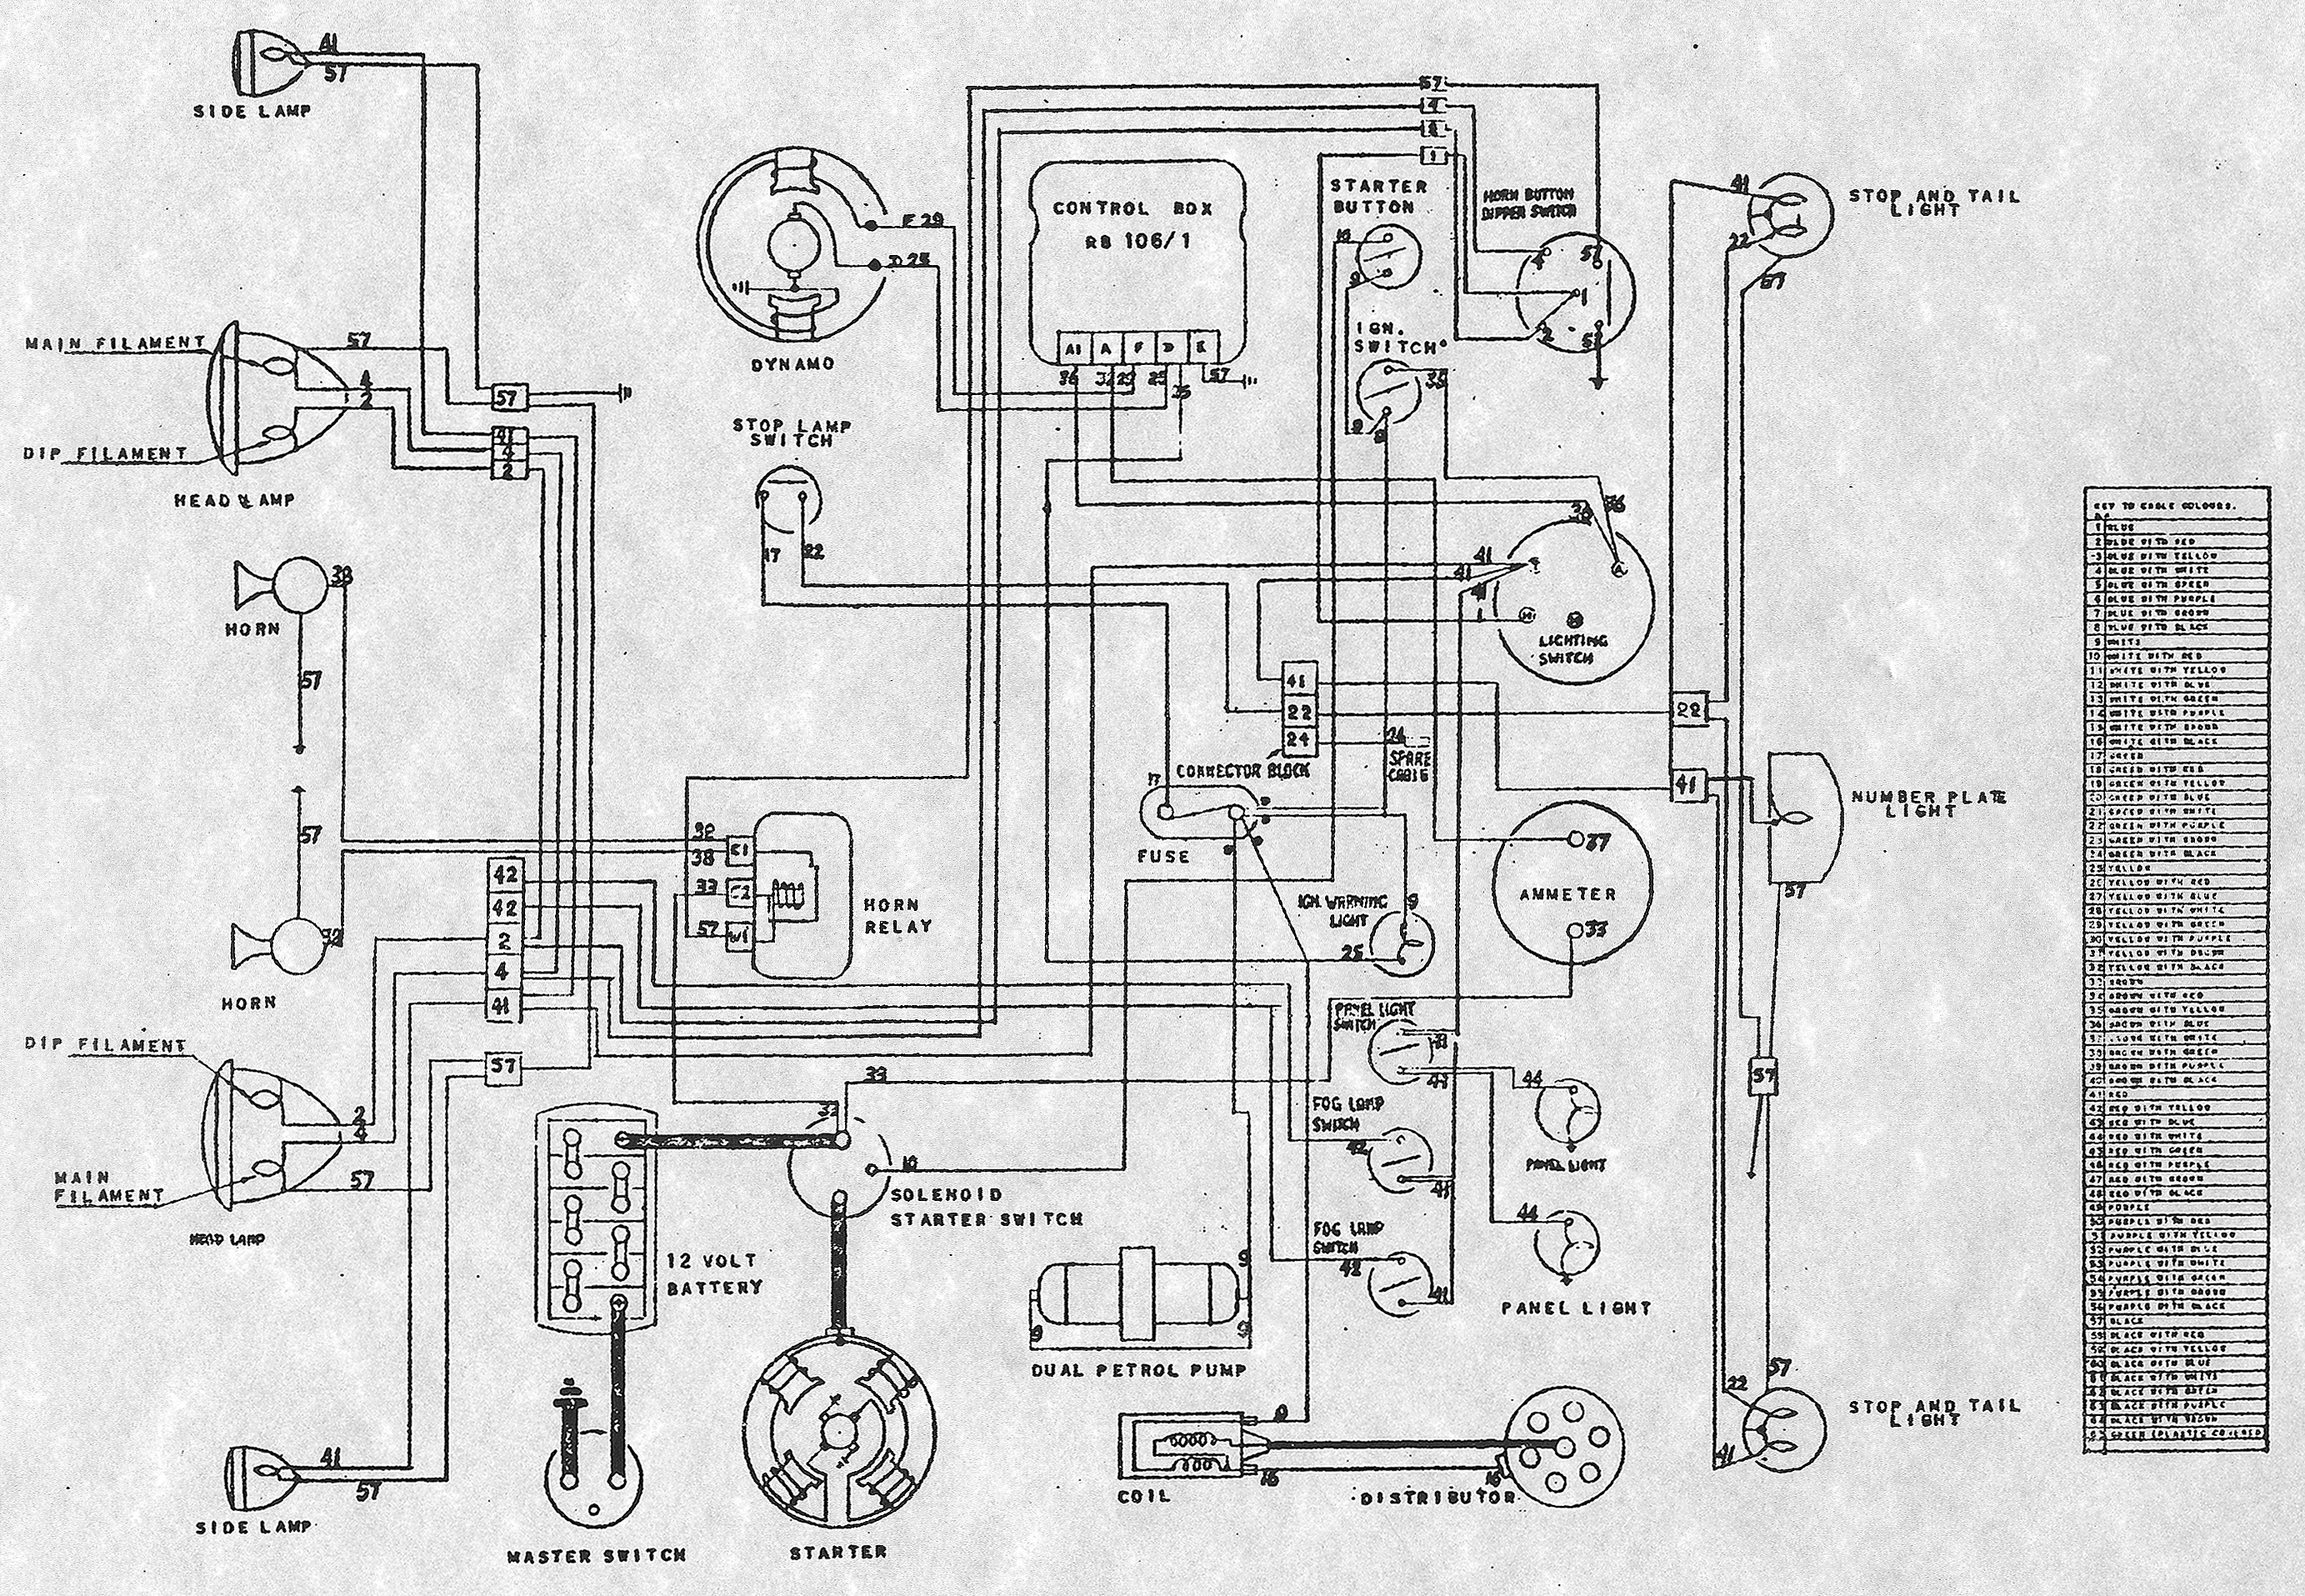 db3swiring buchanan blog 1958 mga wiring diagram at aneh.co